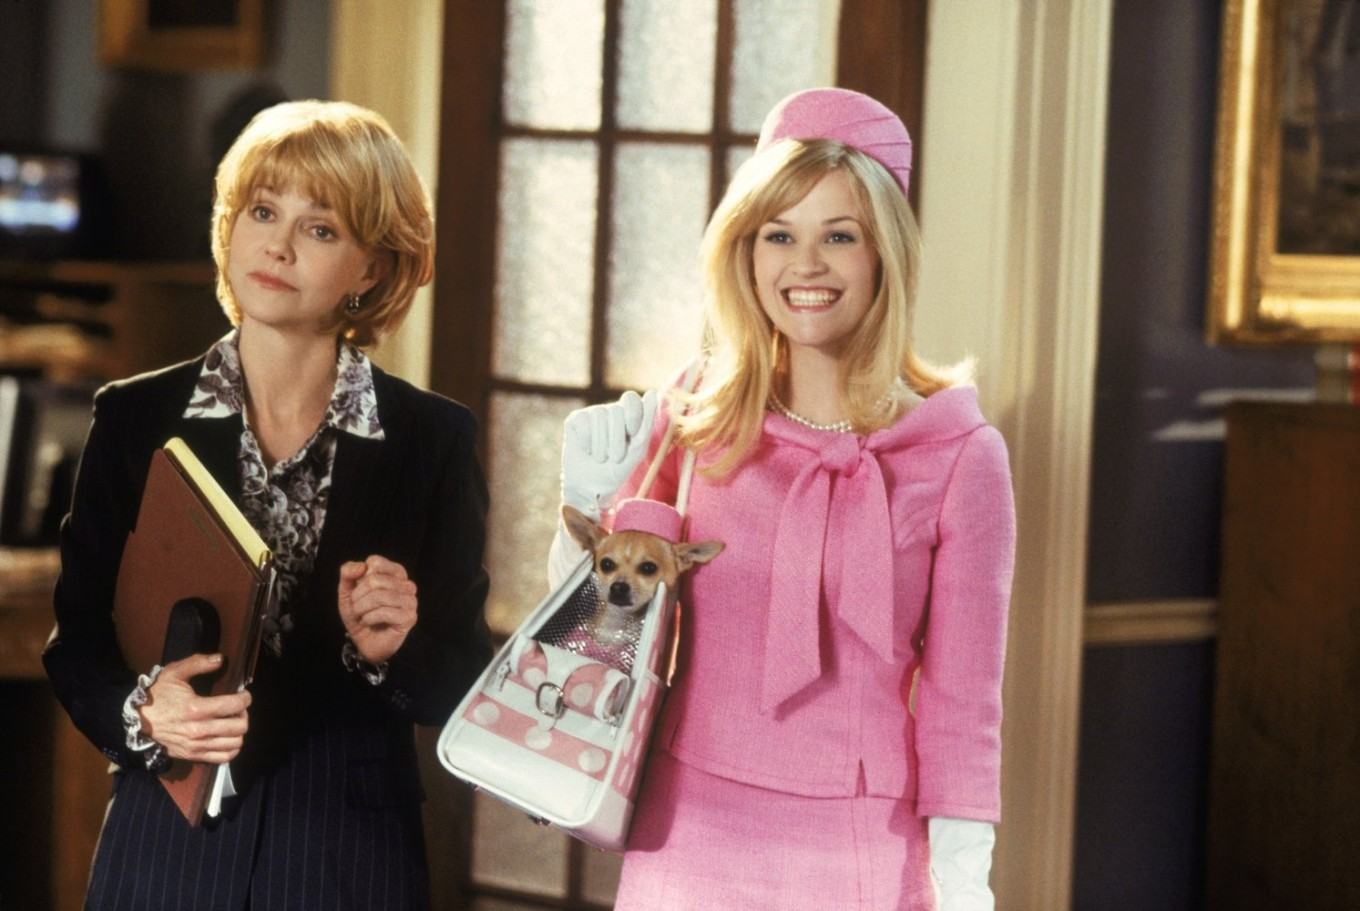 'Rocky' and 'Legally Blonde' to get the 'films in concert' treatment